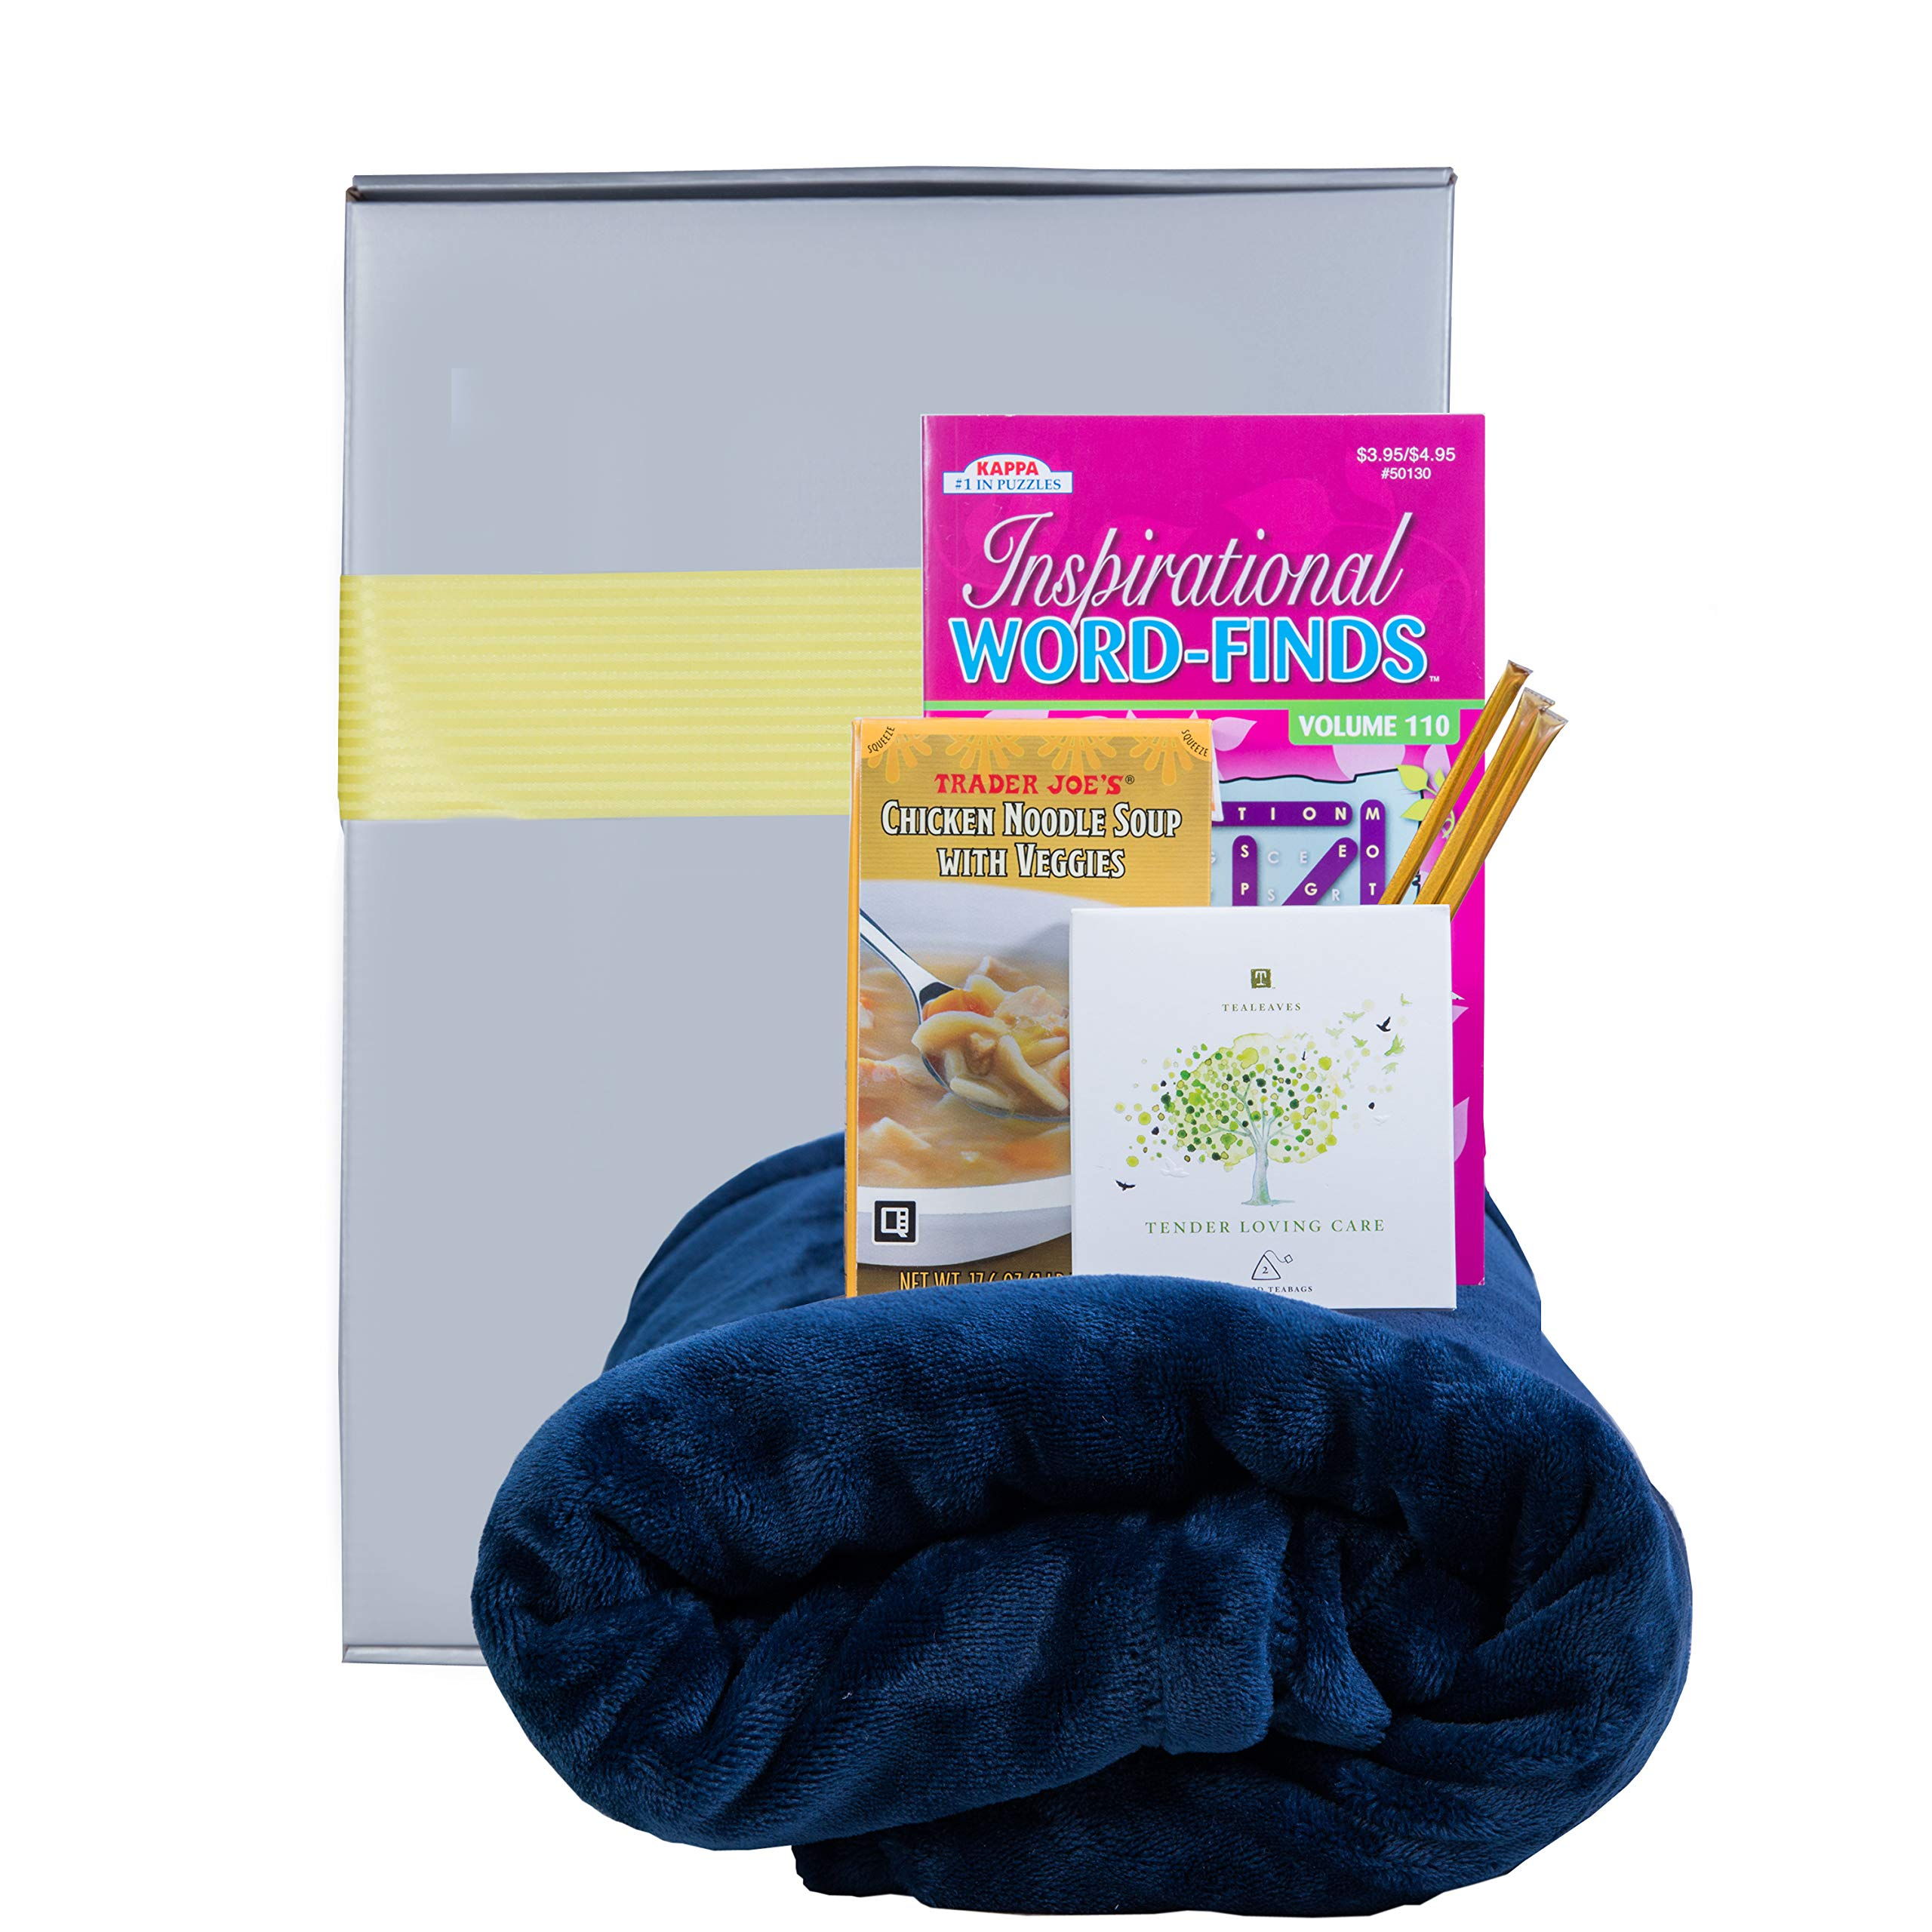 Get Well Gifts Box - Includes Luxury Blanket Organic Tea Soup and Book |Get Well Gift Baskets for Women Men Teens Friends | Get Well Care Package Presented in Beautiful Gift Box With Ribbon